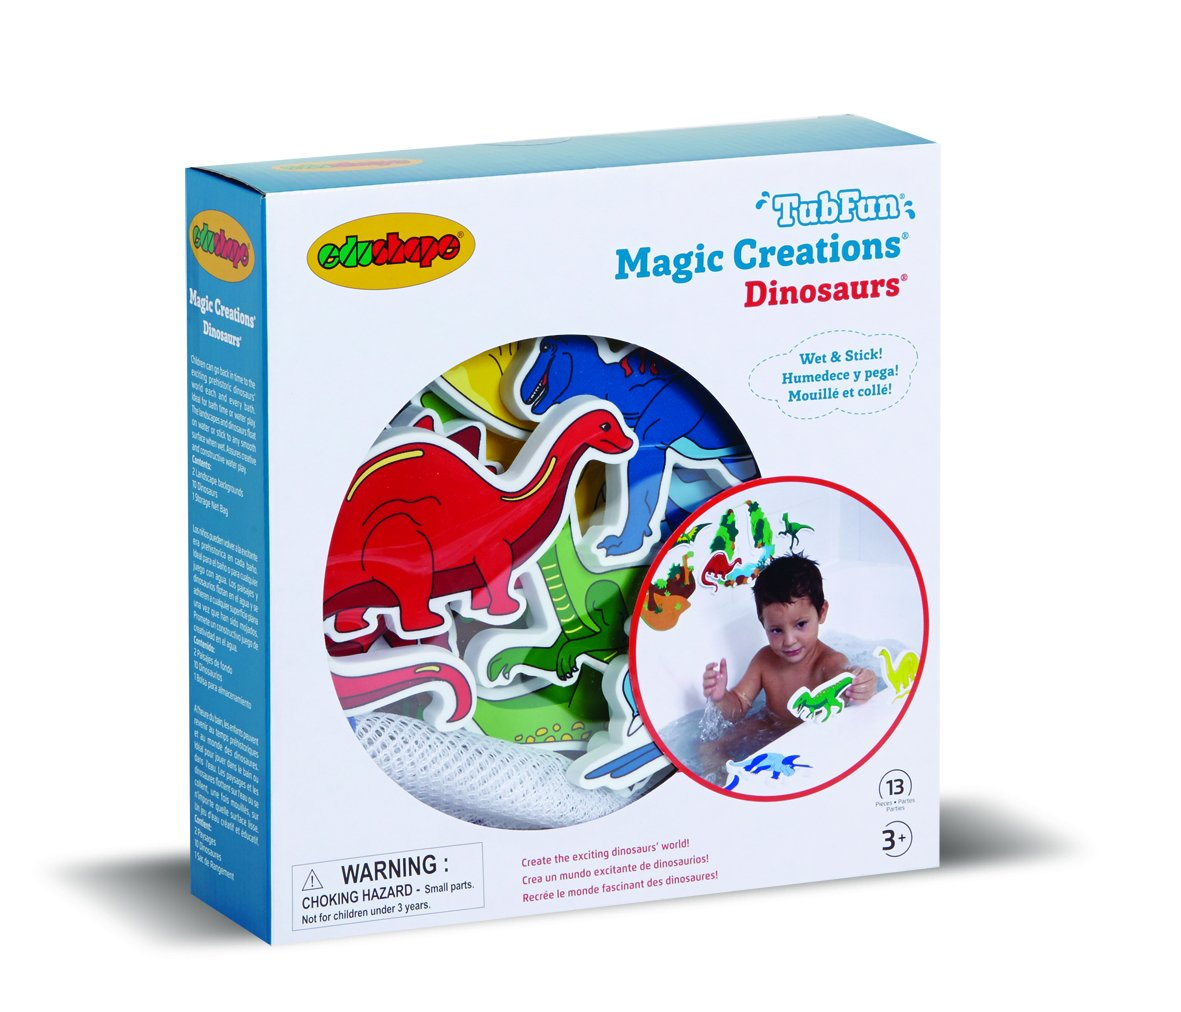 Edushape Magic Creations Dinosaurs Bath Toy Halilit 547009 Creative Foam